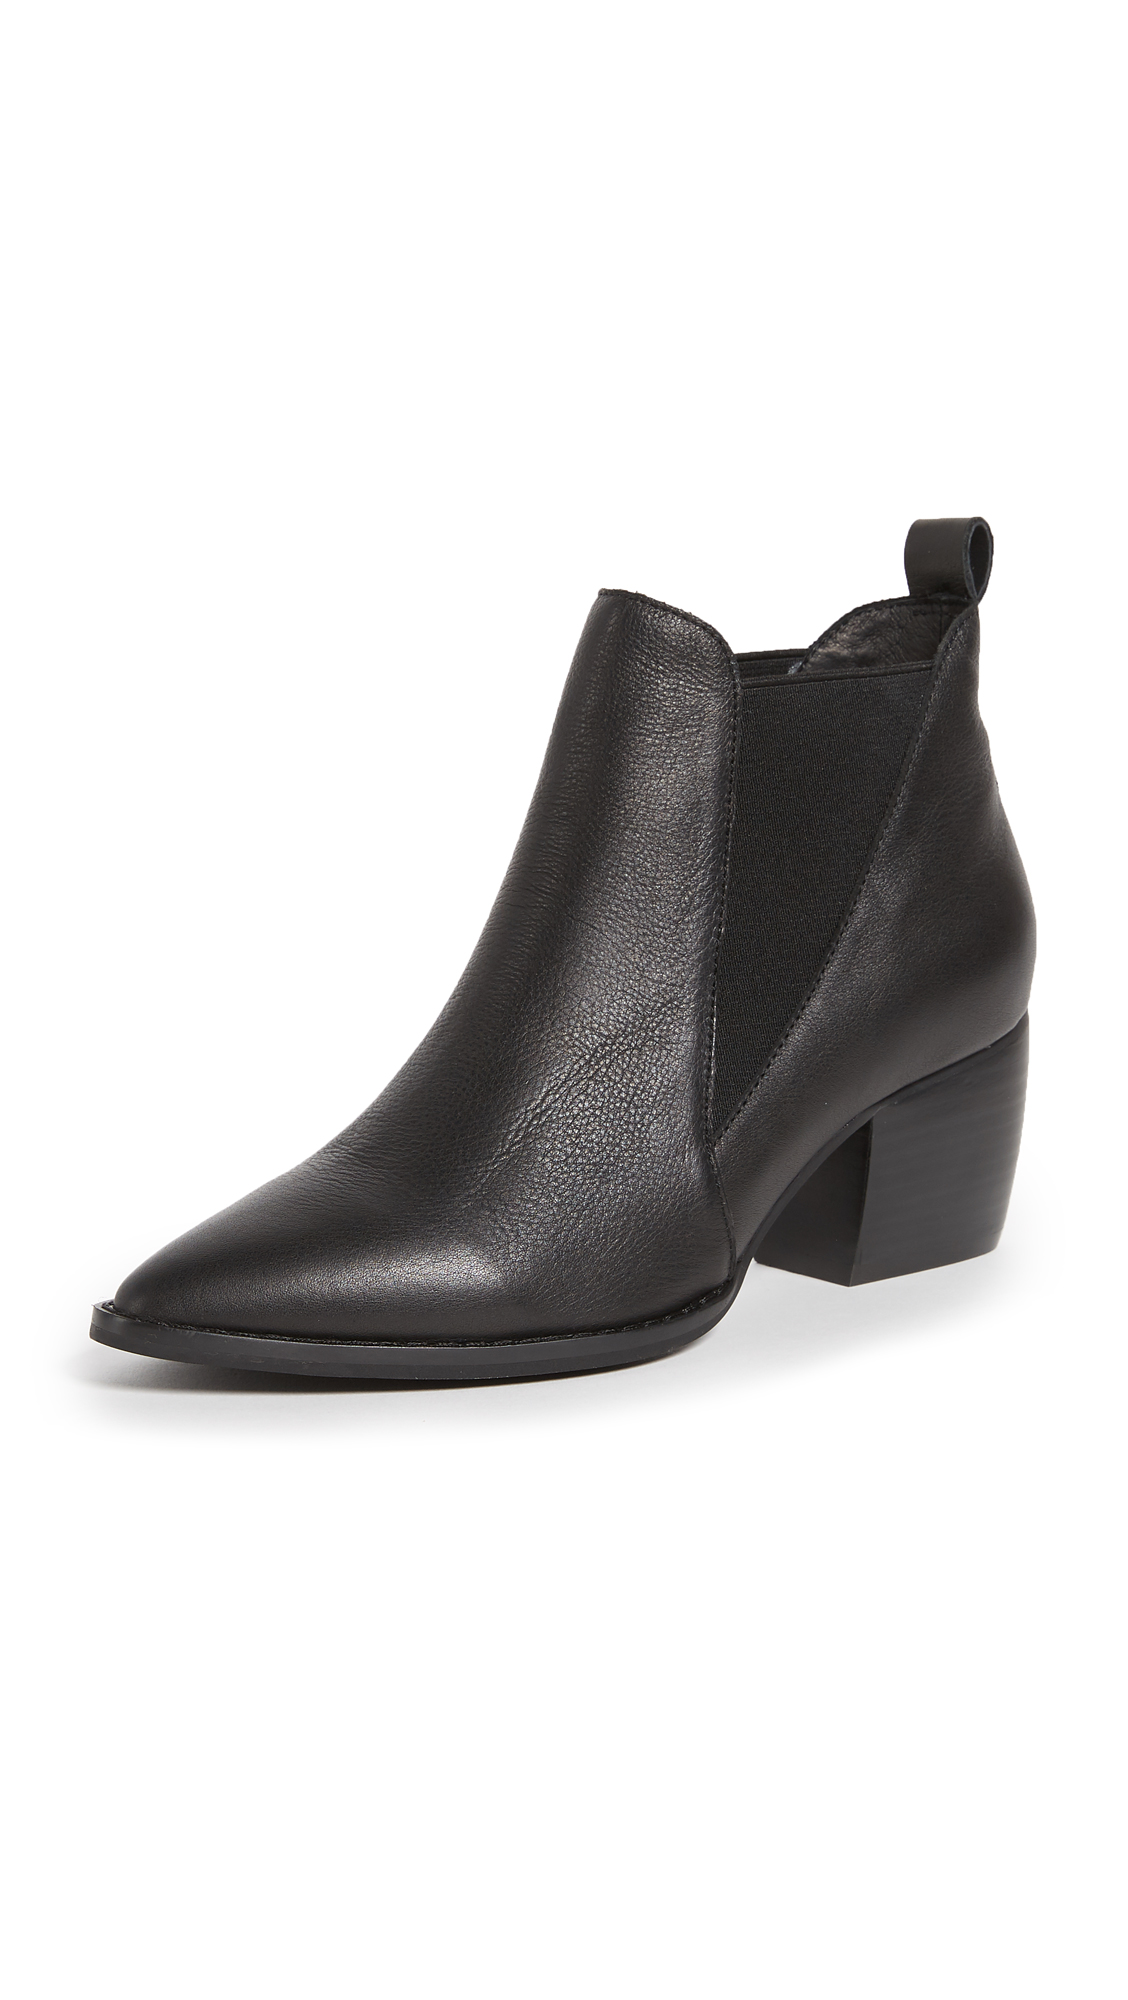 Sol Sana Bruno Booties - Black